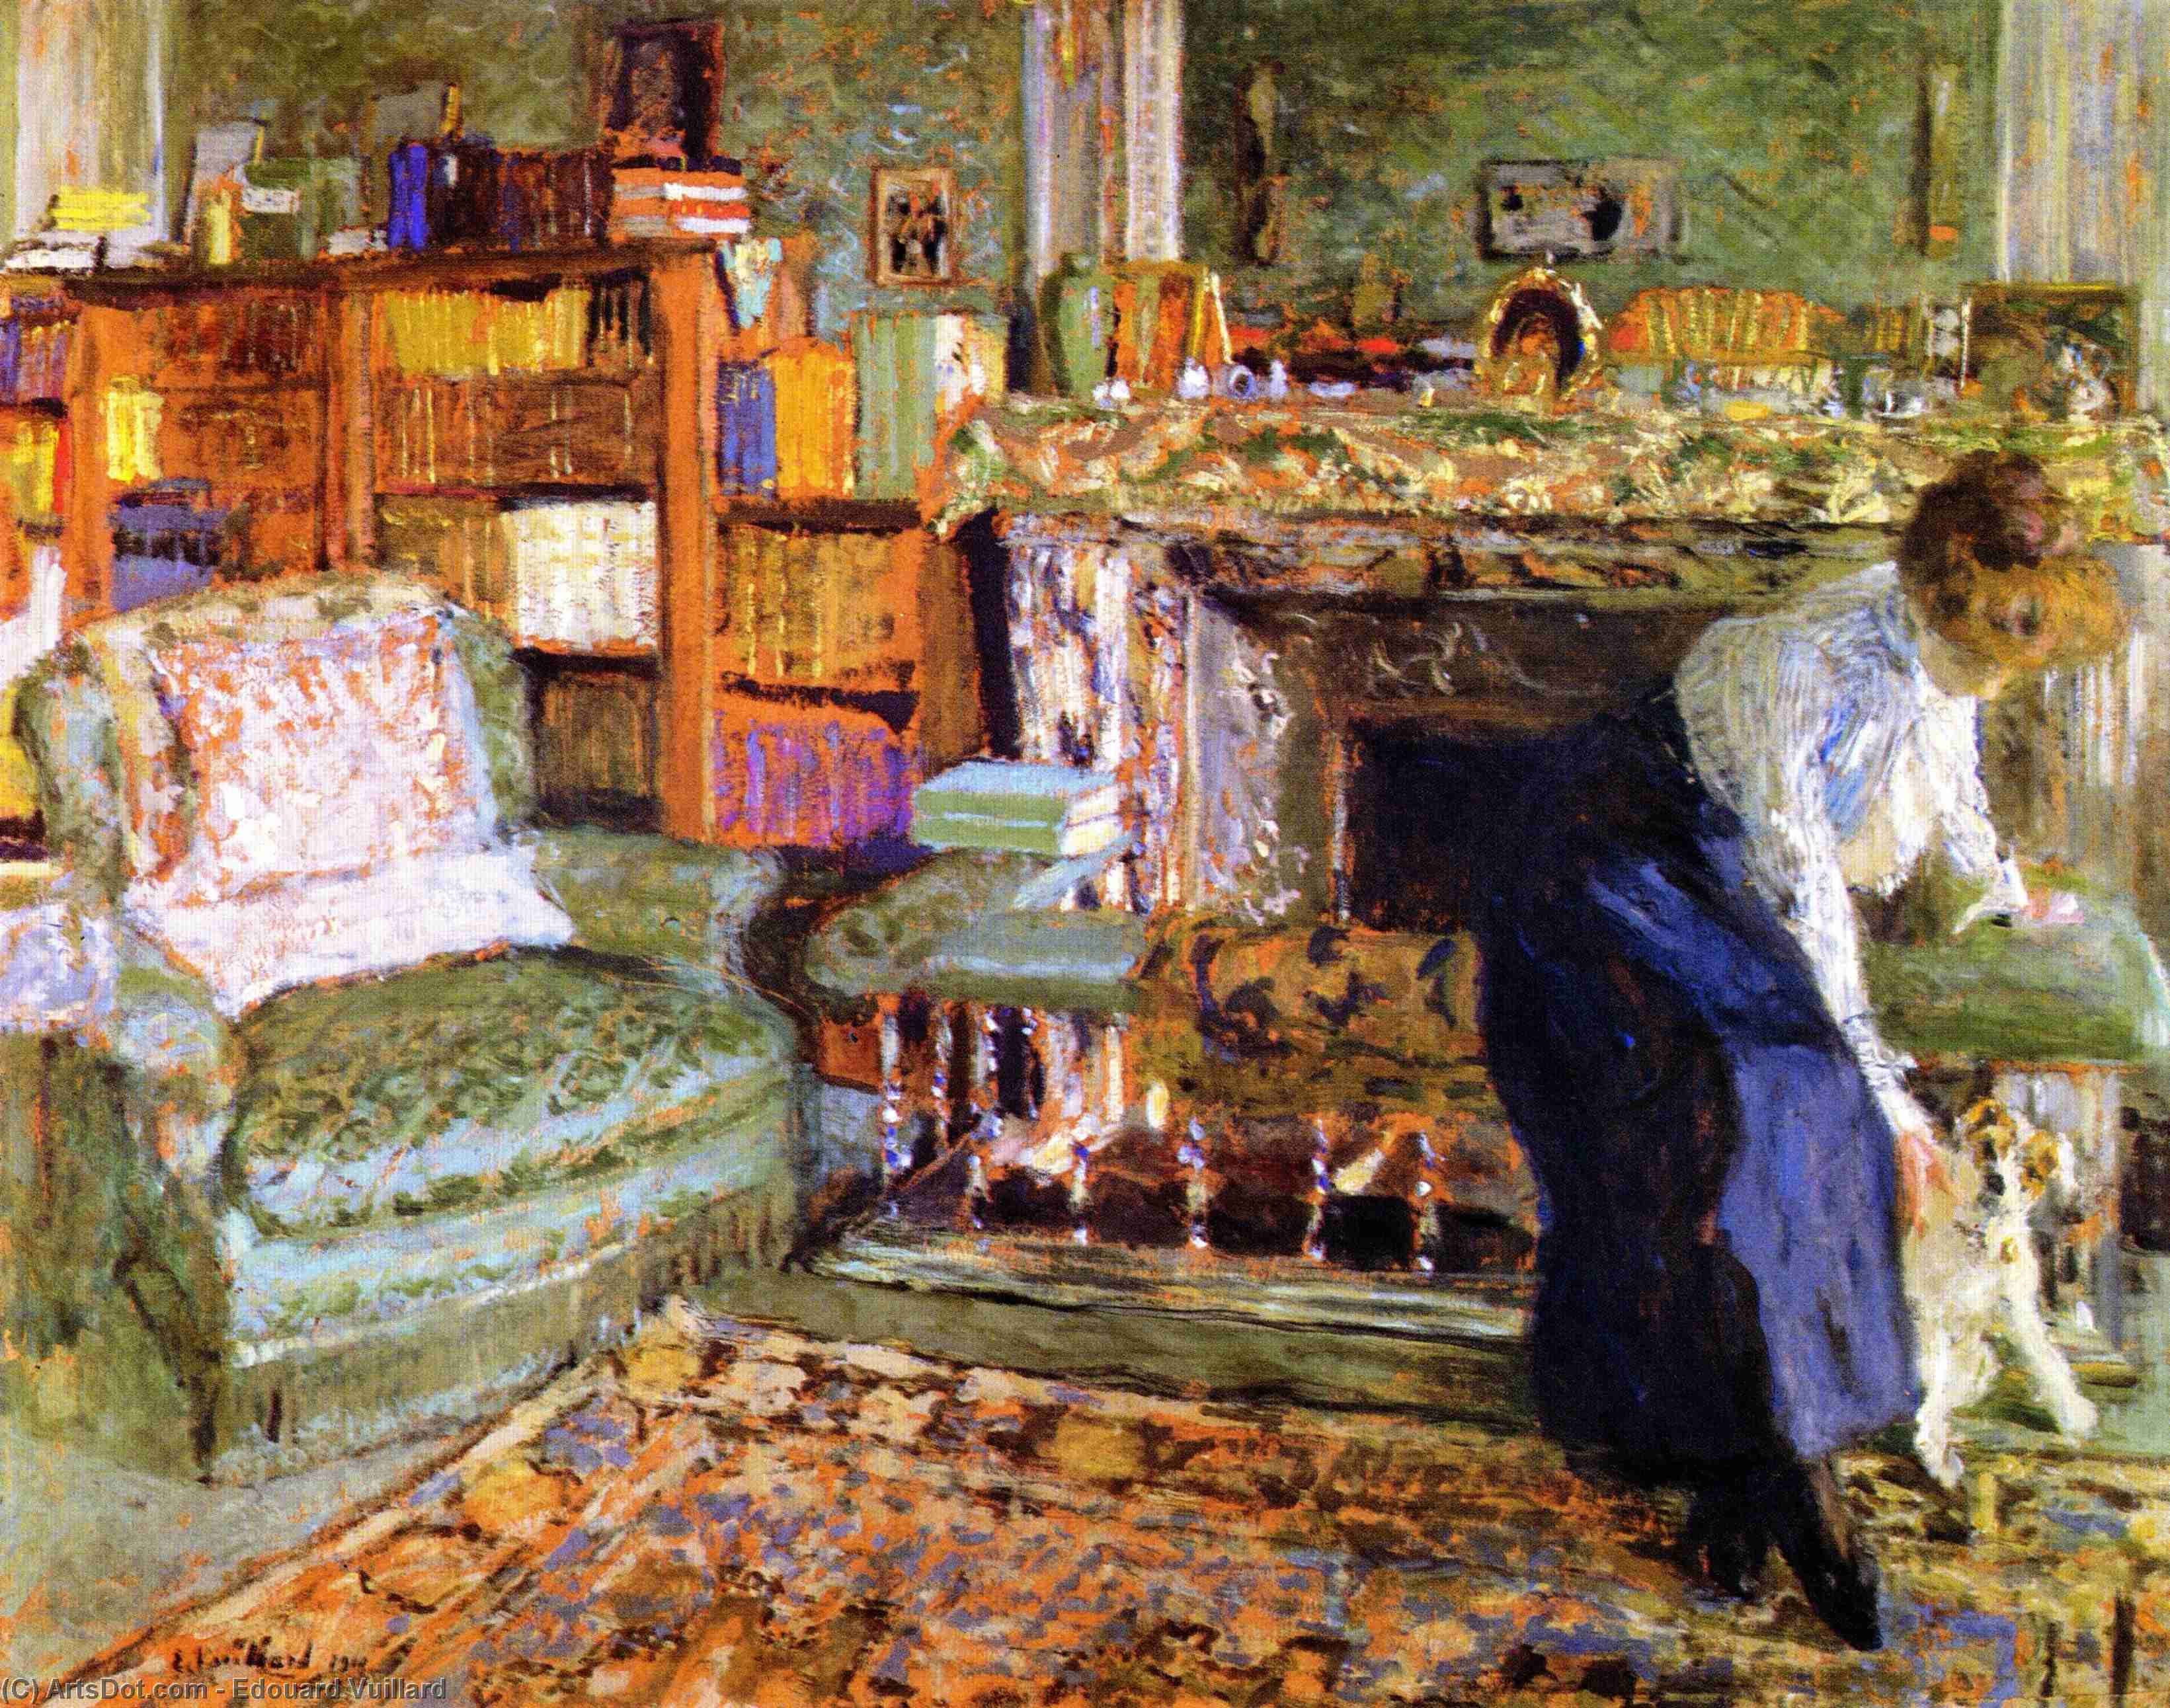 Wikioo.org - The Encyclopedia of Fine Arts - Painting, Artwork by Jean Edouard Vuillard - Miss Marguerite Chapin with Her Fox-Terrier